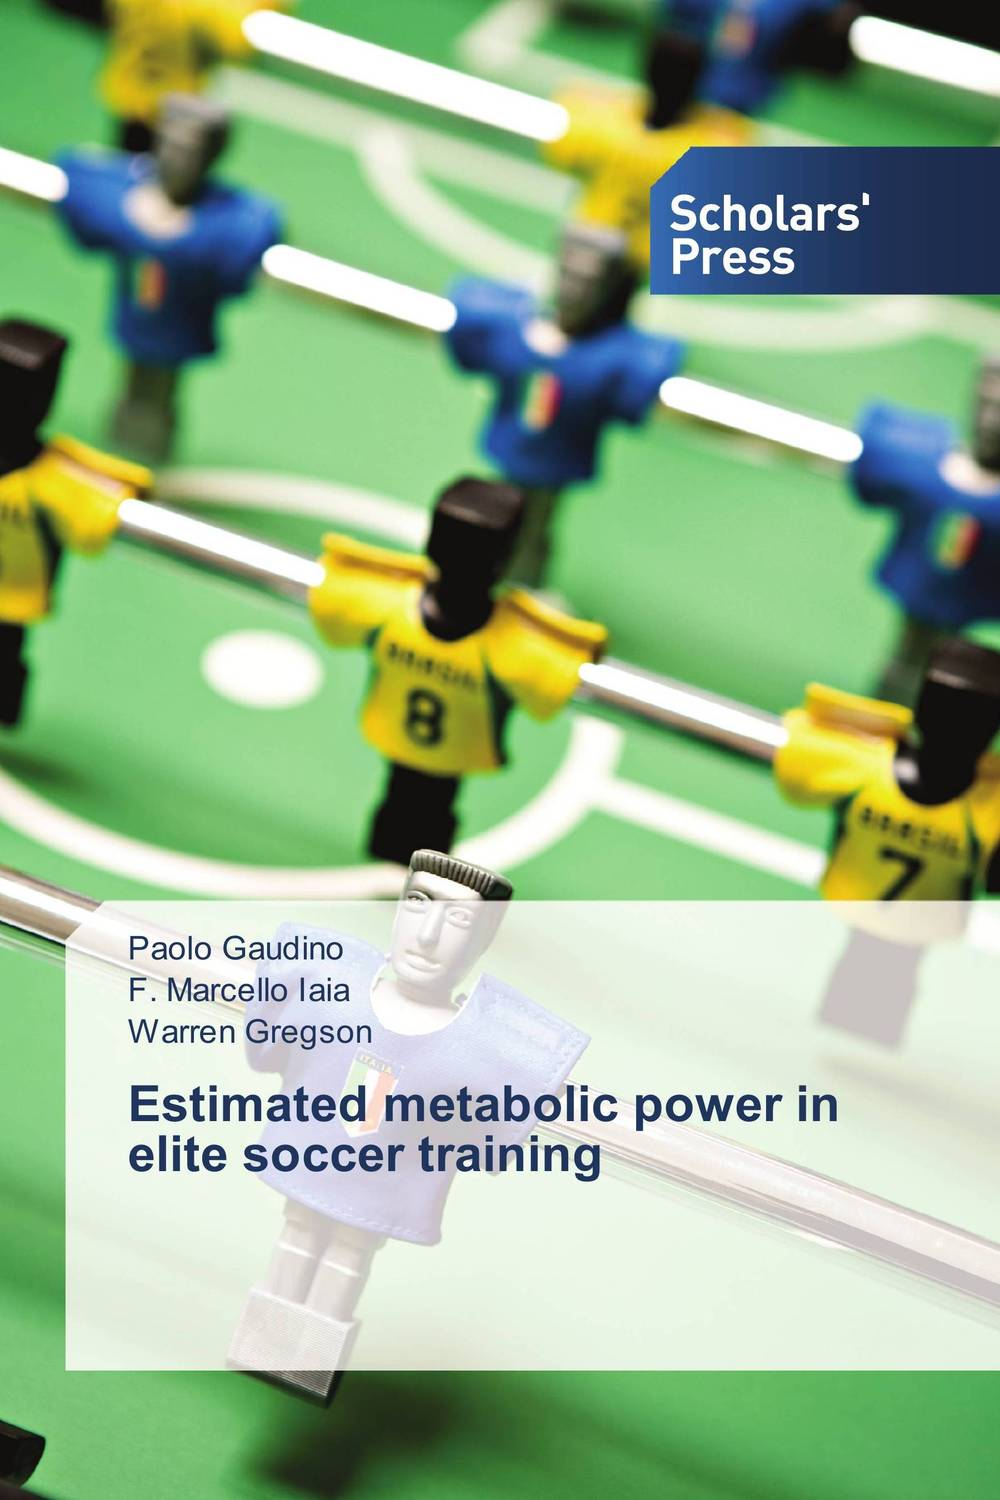 Estimated metabolic power in elite soccer training